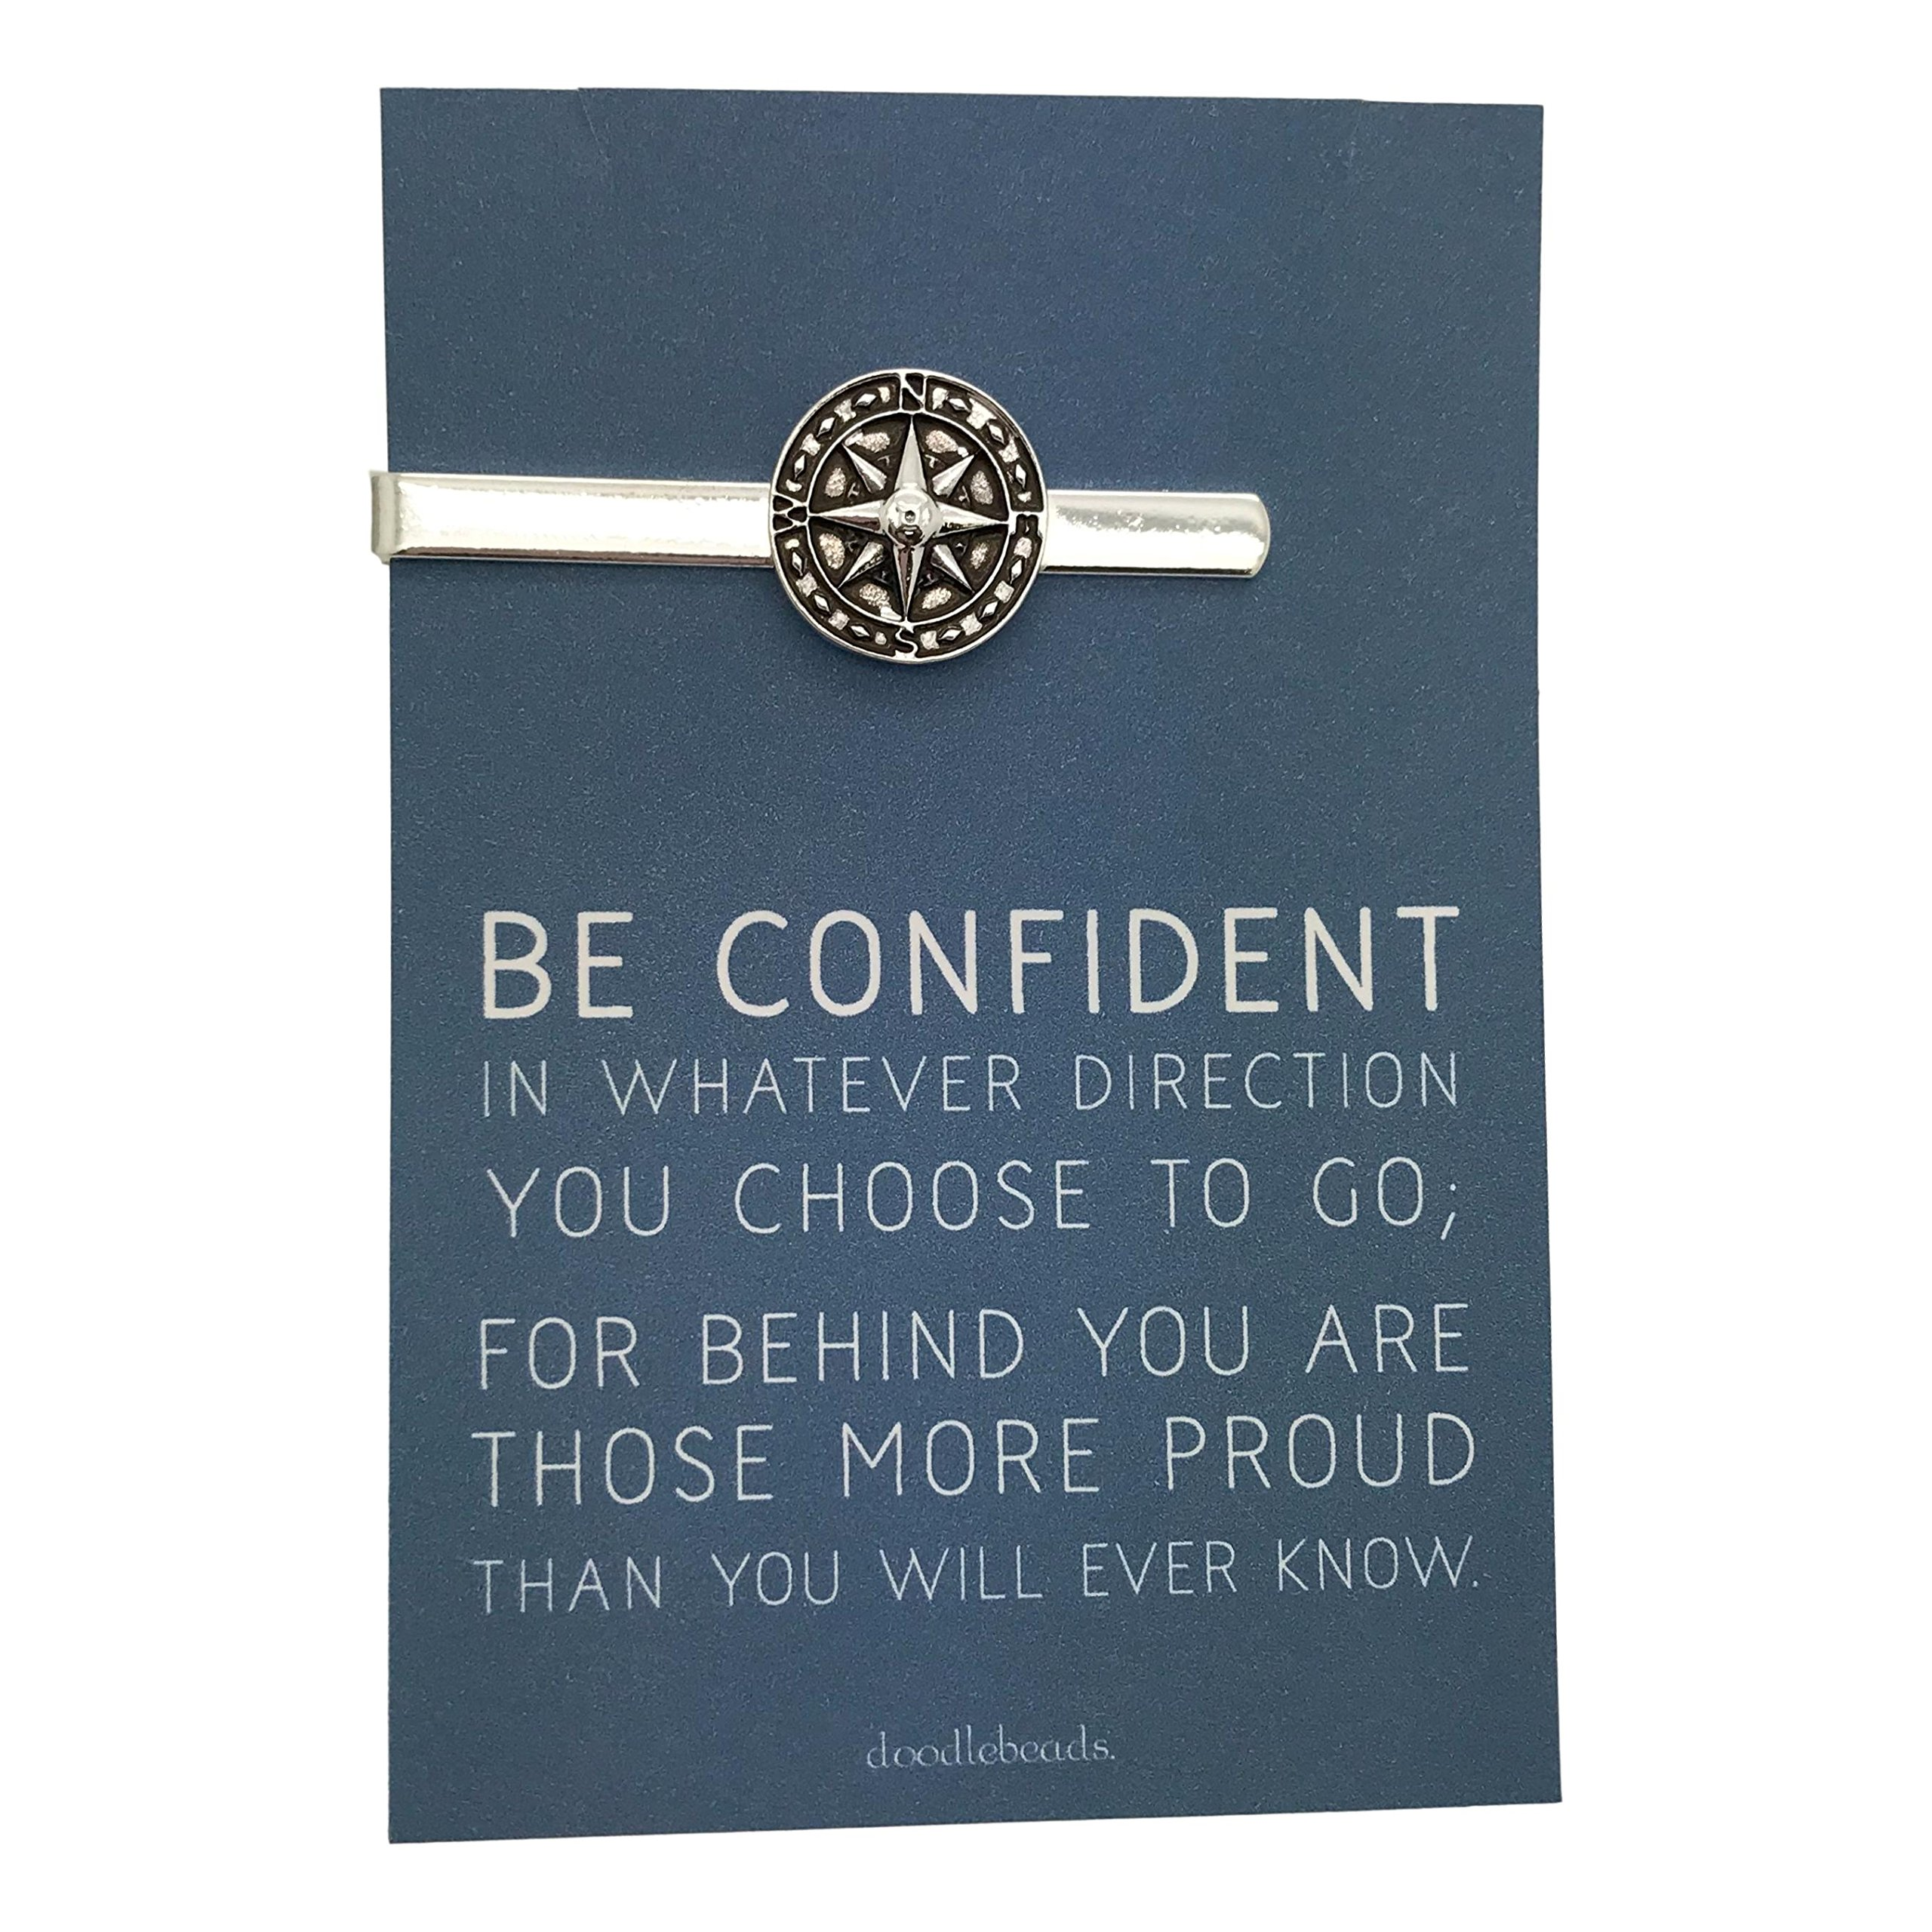 Doodle Beads Graduation gift, Compass Tie Bar Silver, Be Confident in Whatever Direction you choose to go, carded gift for him, inspirational gift, college graduate, motivational gift